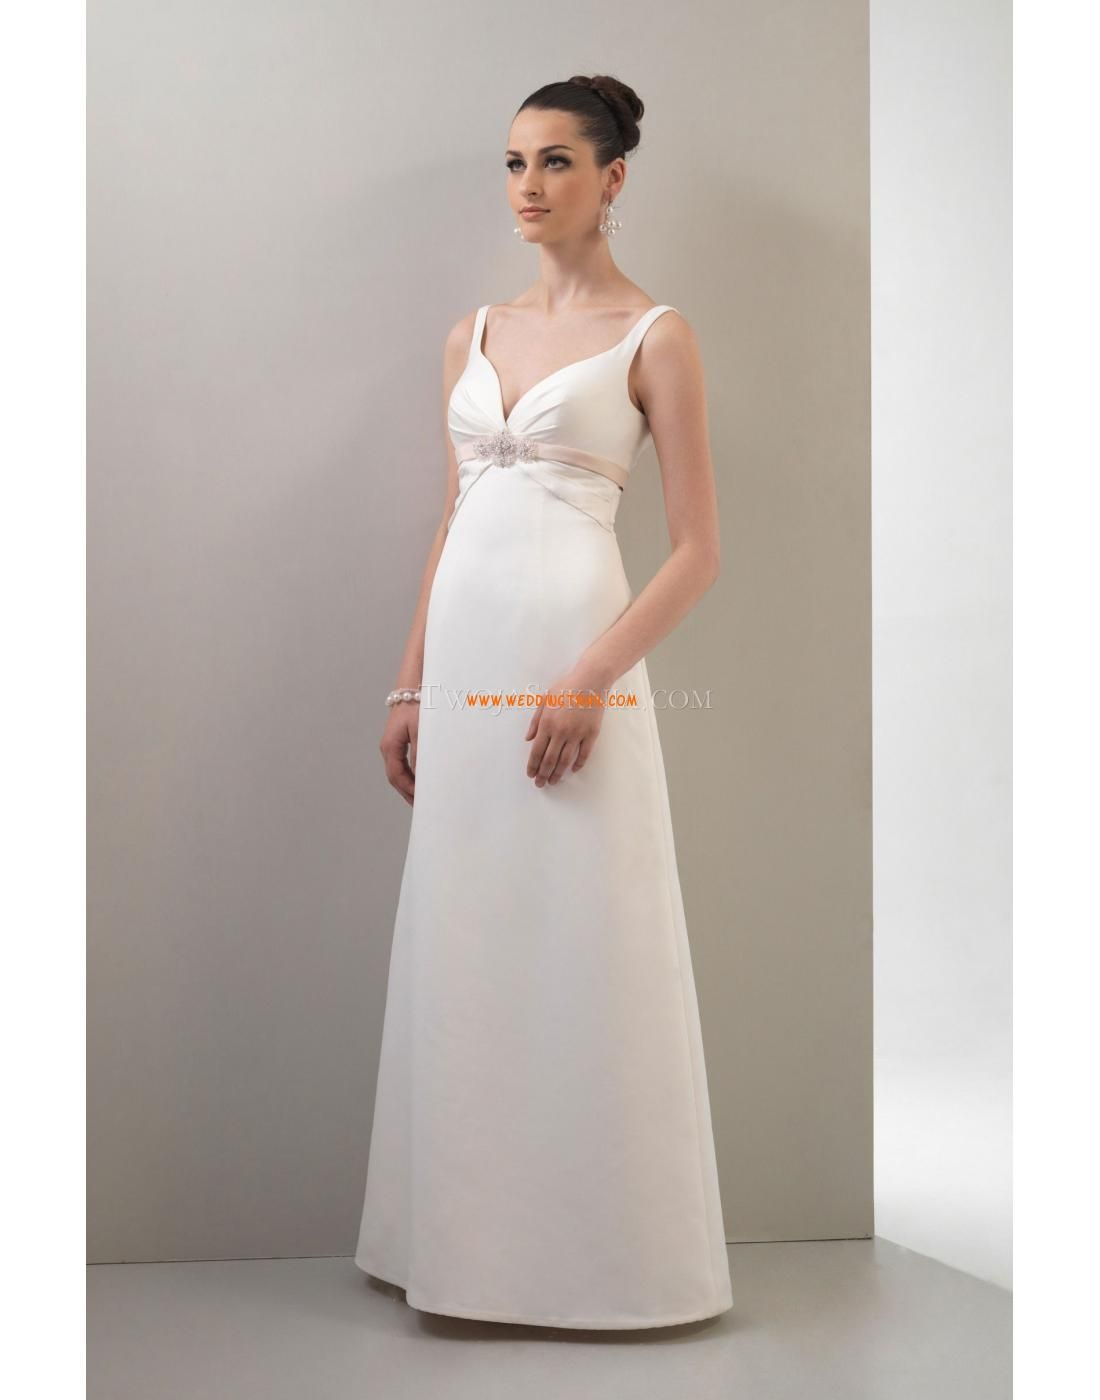 A-line Straps Satin Wedding Dress Venus VN6695 Venus Informal 2011 ...